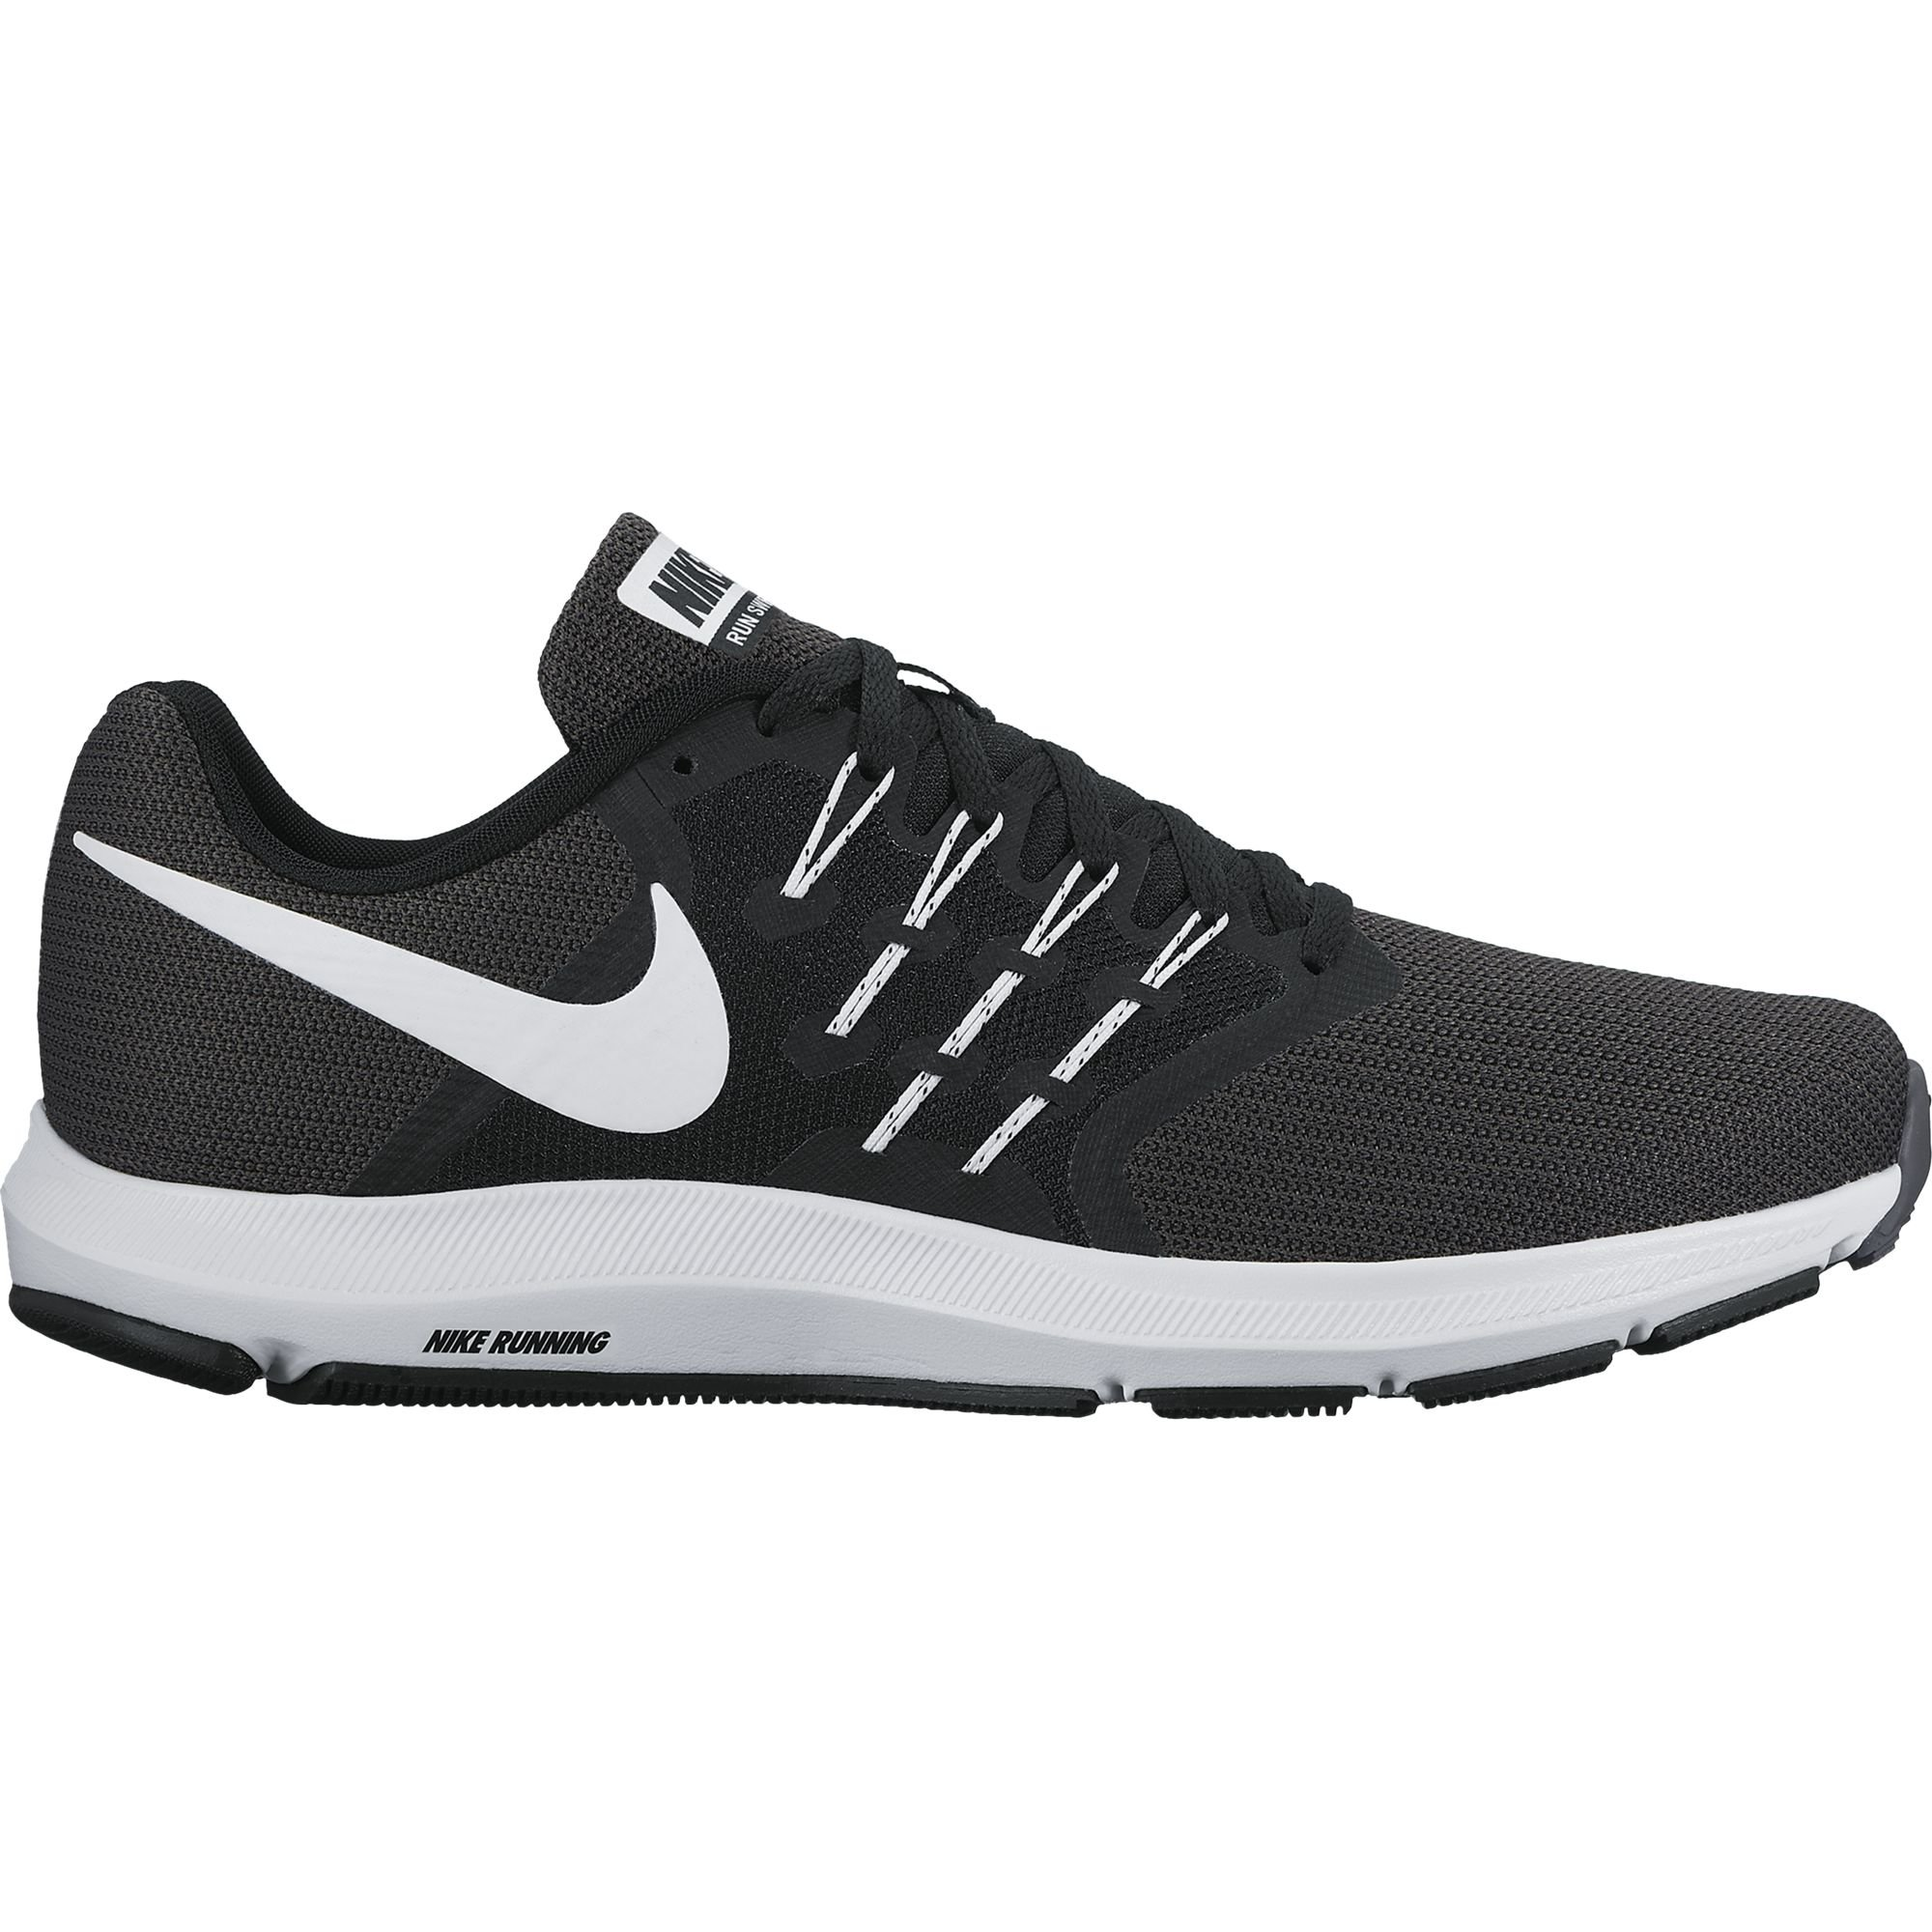 39f9c279e18 Galleon - NIKE Men s Run Swift Running Shoe Black White Dark Grey Size 7.5  M US